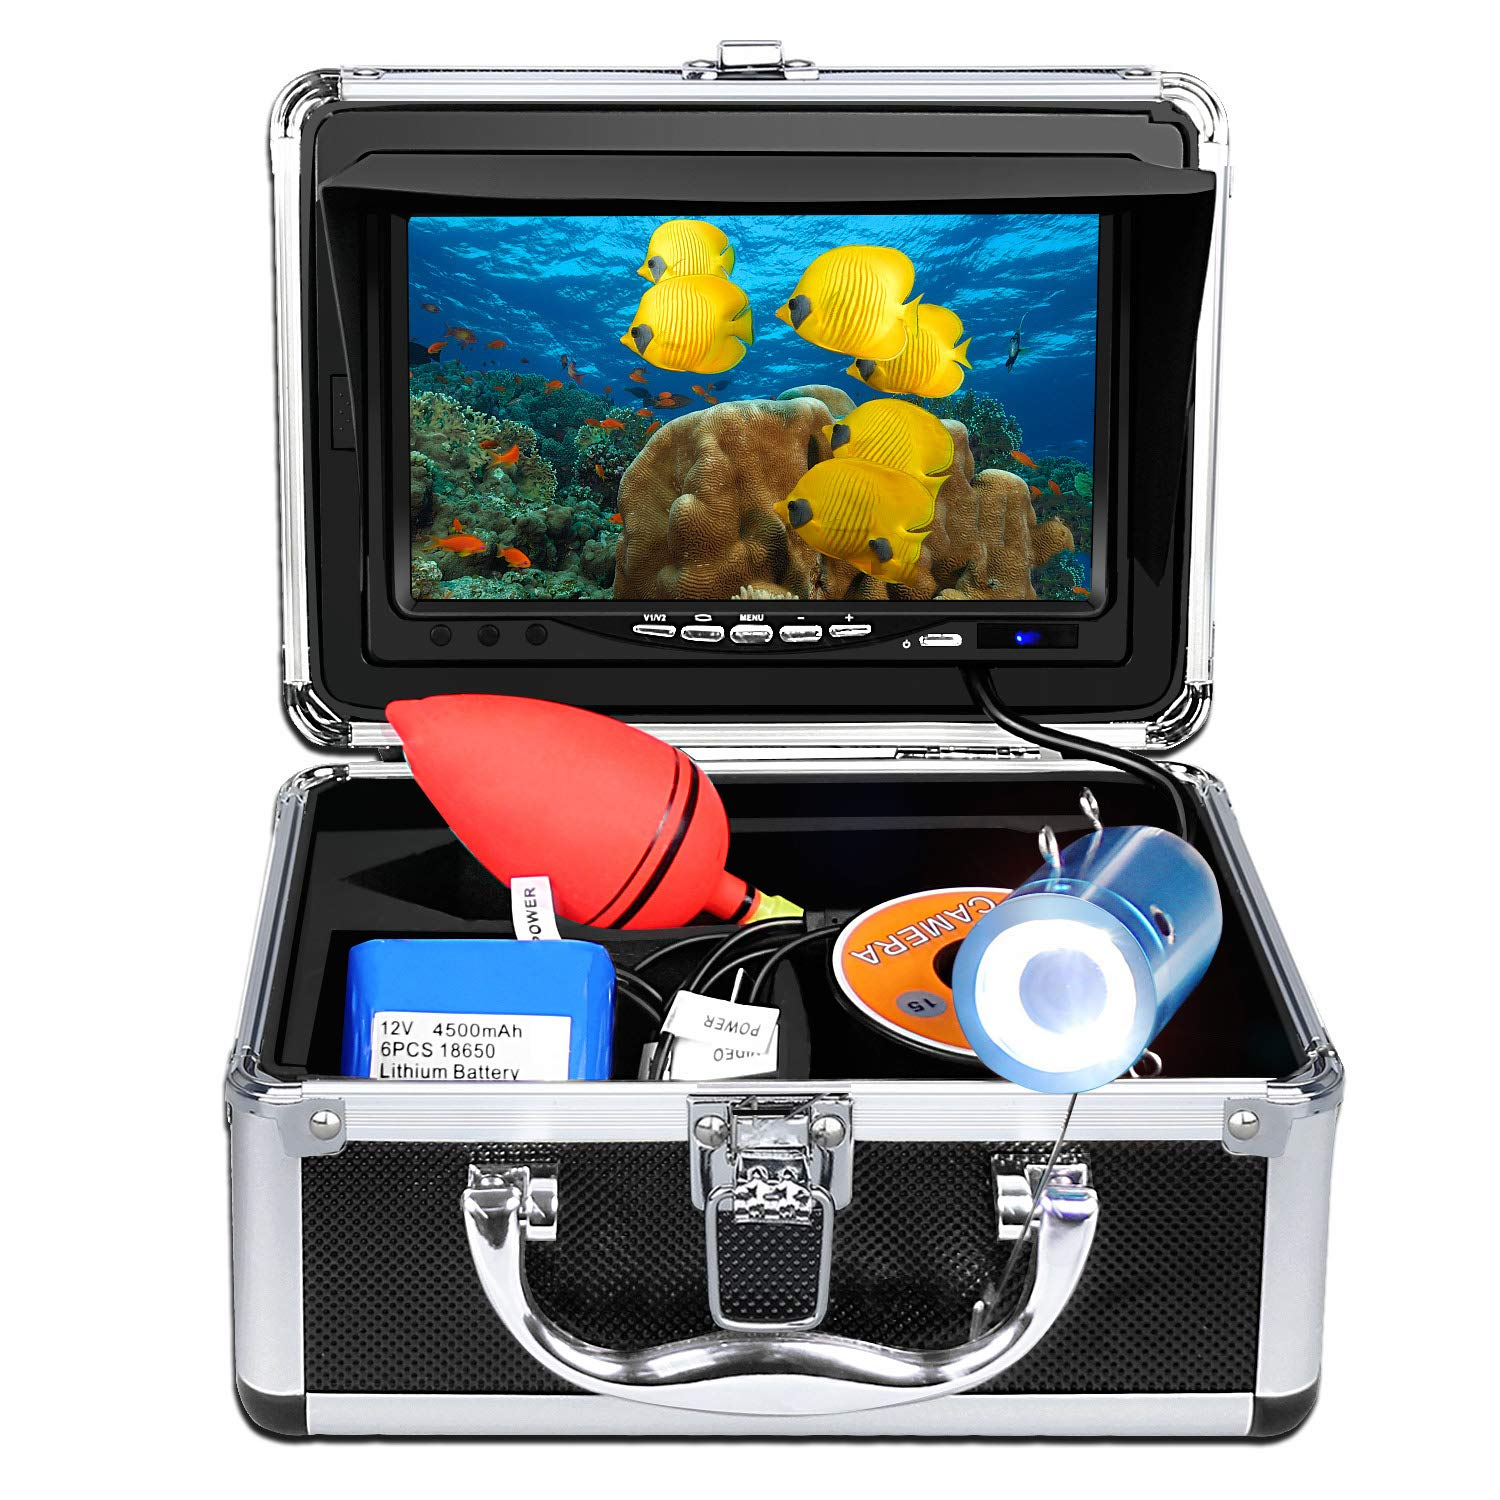 """Anysun Underwater Fish Finder - Professional Fishing Video Camera with 7"""" TFT Color LCD HD Monitor 700TVL, CCD 15M Cable Length with Carry Case - Fun to See Fish Biting"""